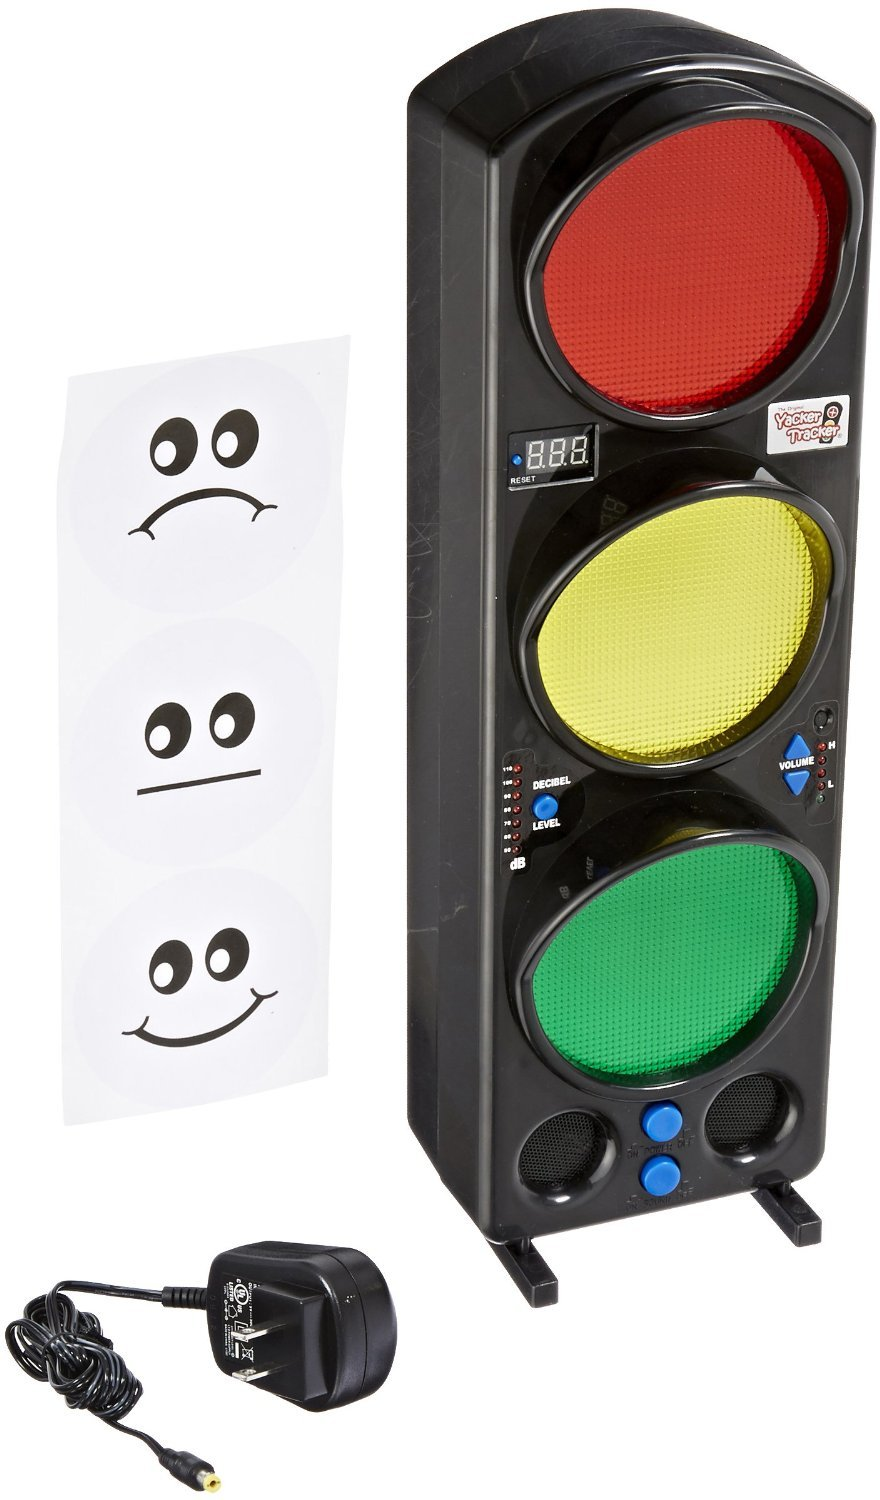 Yacker Tracker Noise Level Monitor Detector - Visual LED Traffic Signal Light - Great for Schools, Classrooms, Cafeterias, Hospitals and More - 17'' by Yacker Tracker